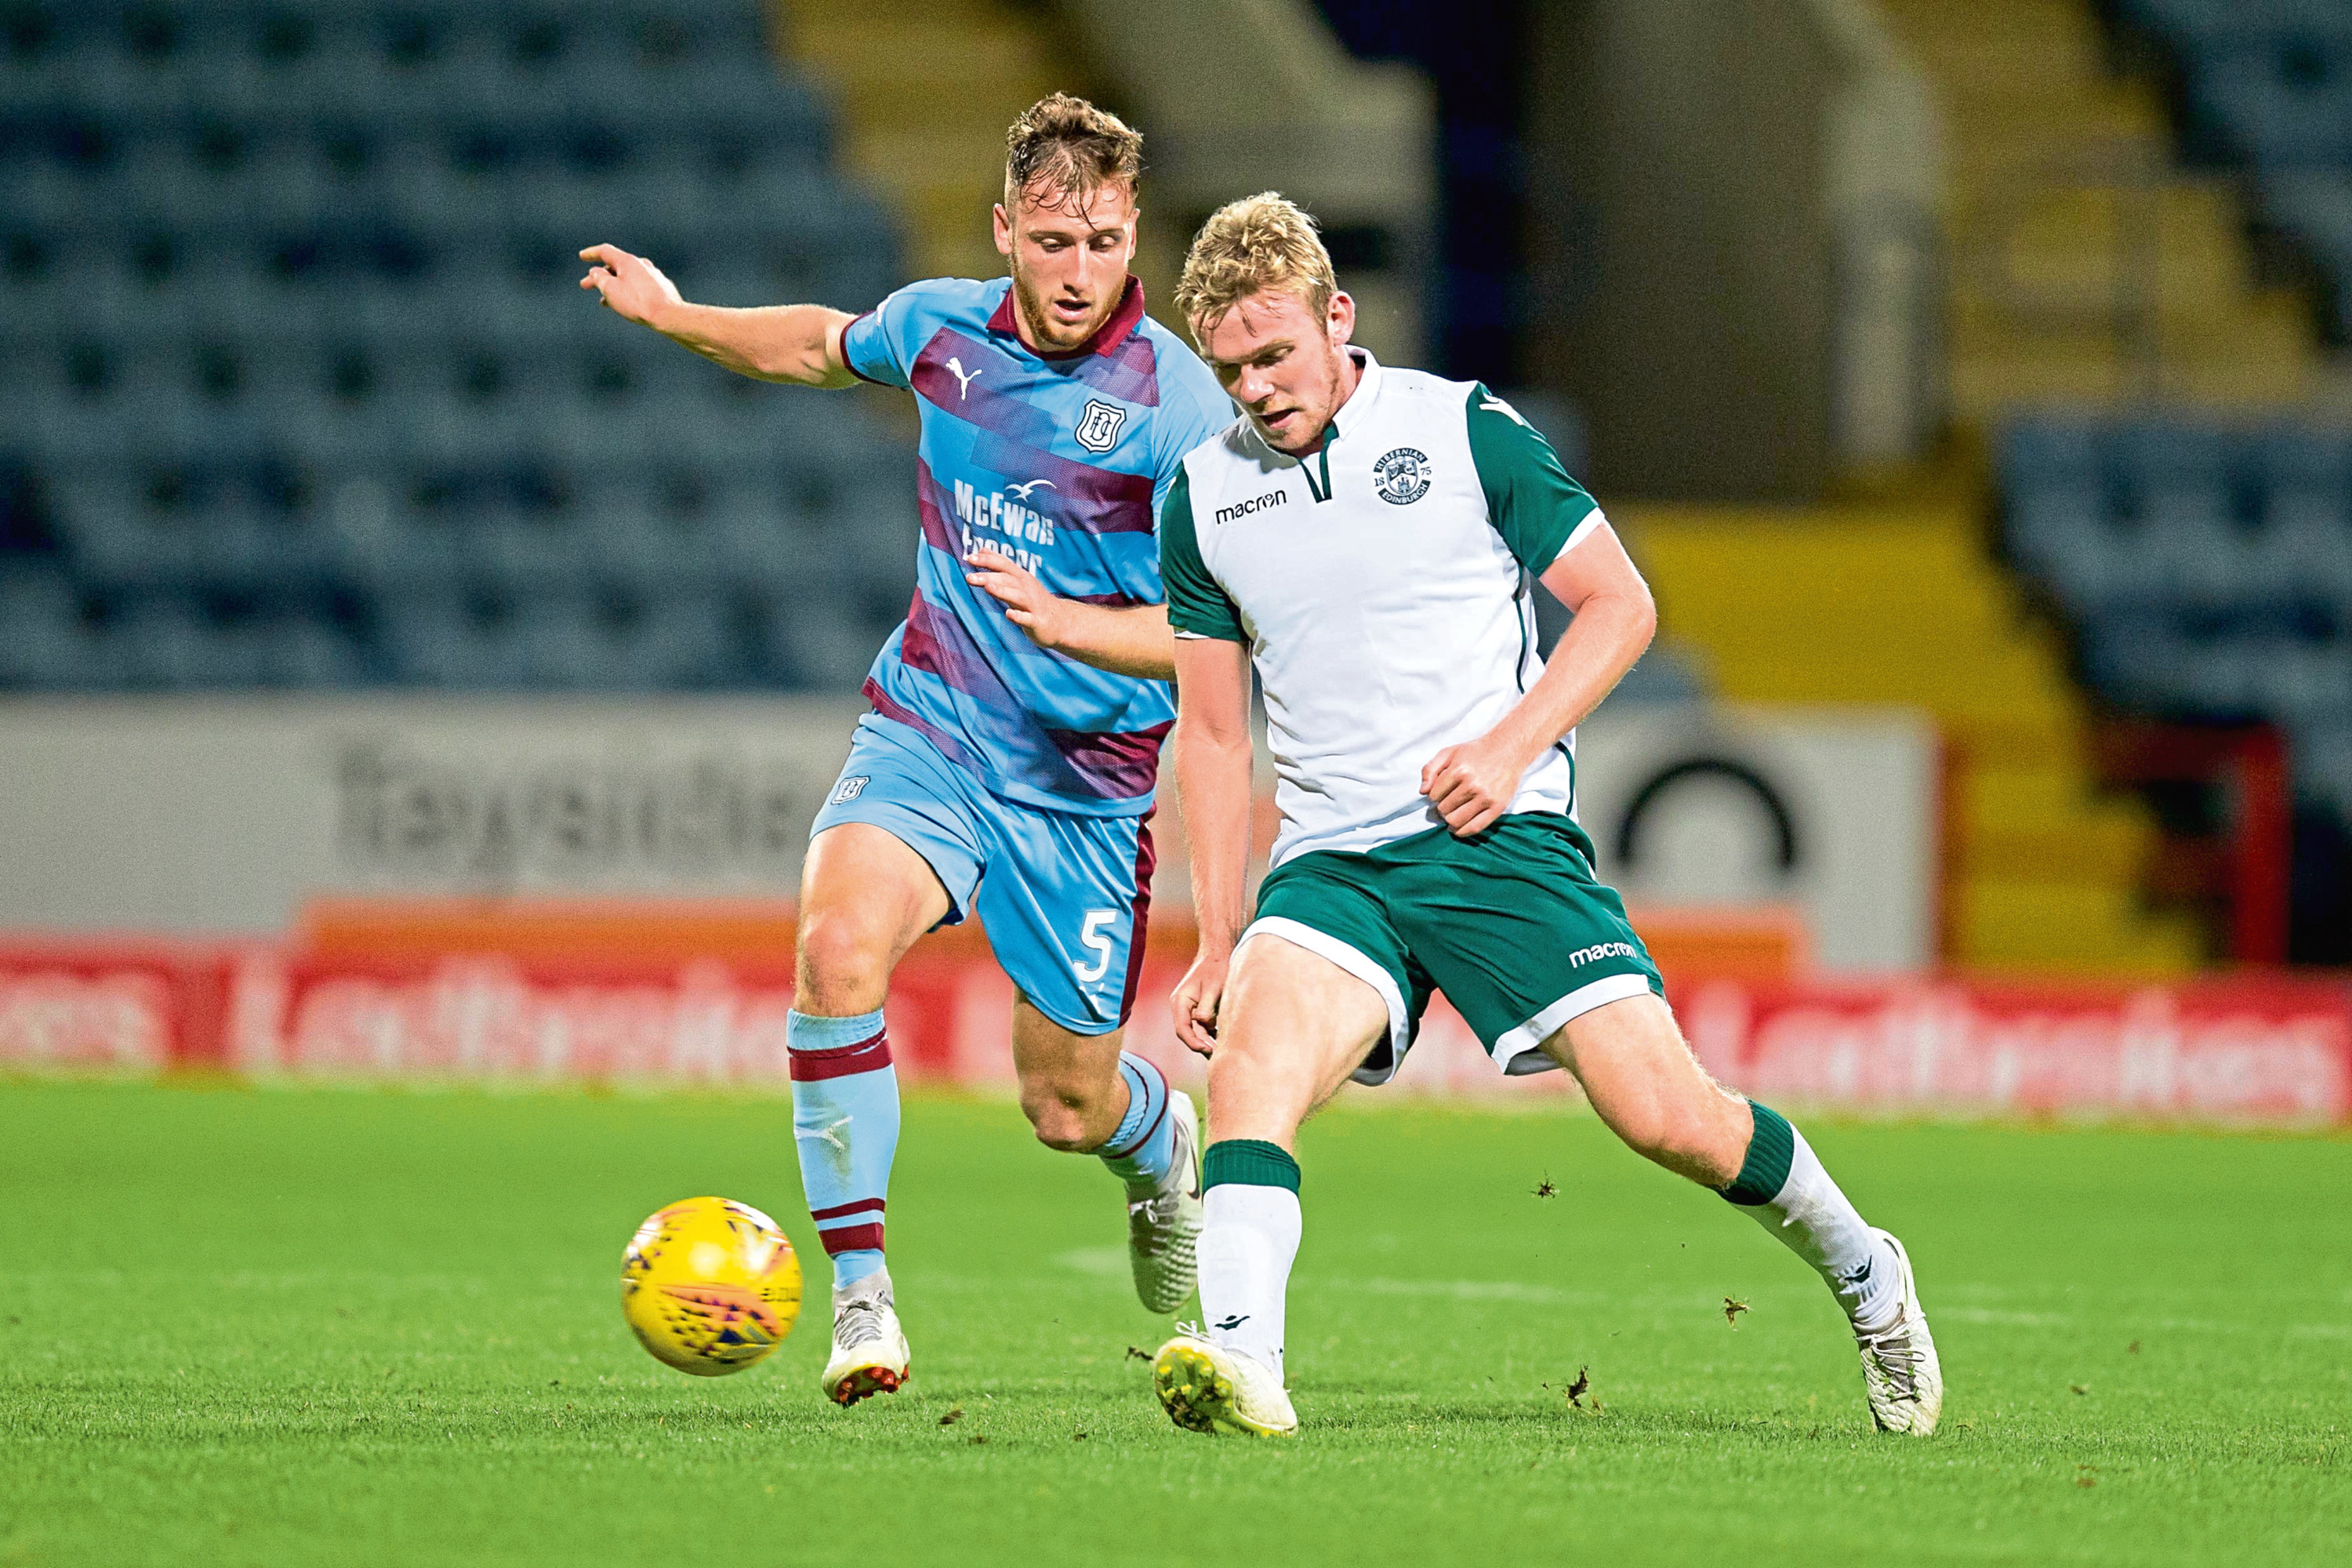 Dan Jefferies of Dundee challenges for the ball with Lewis Allan of Hibernian